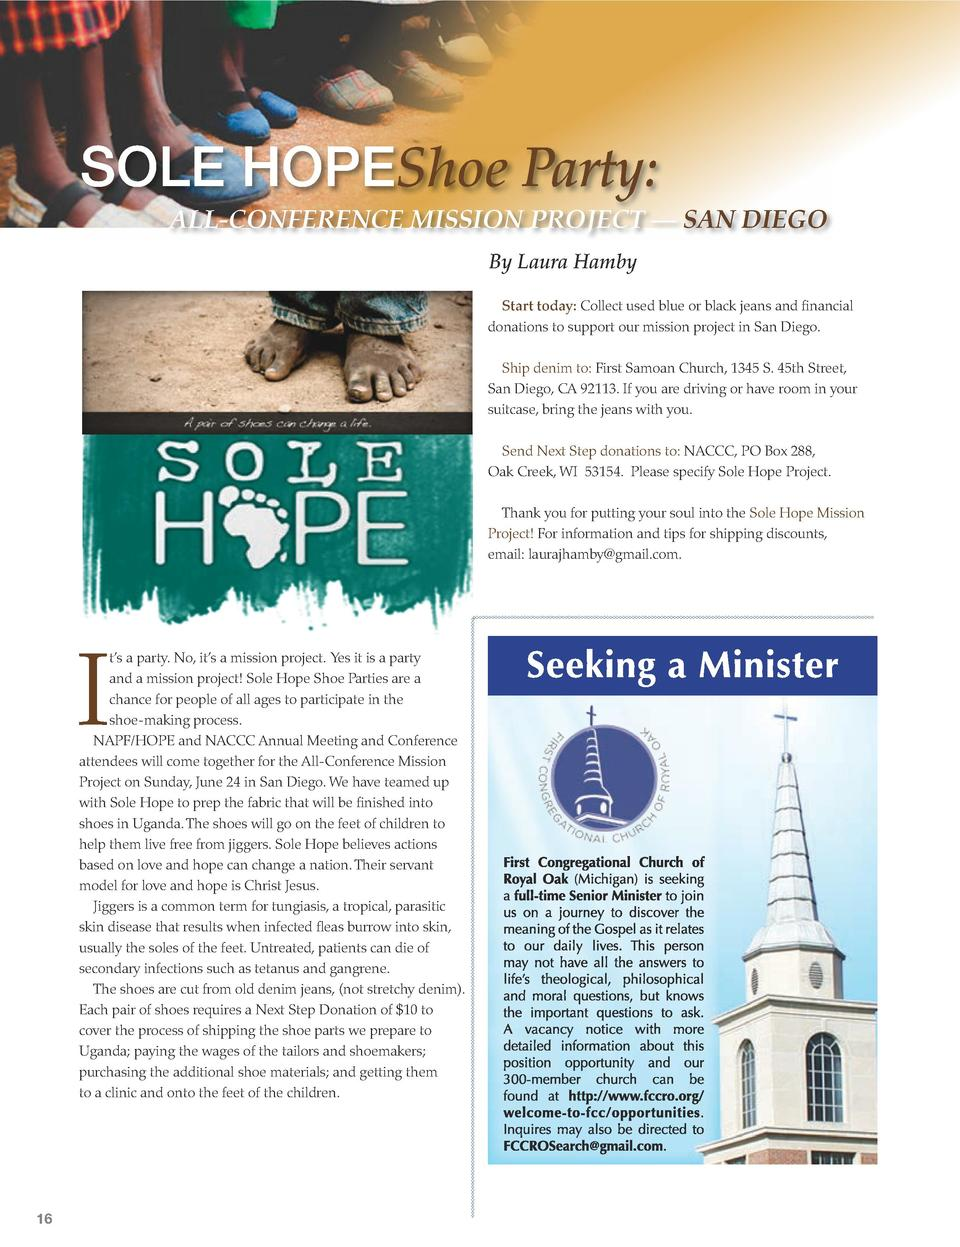 SOLE HOPEShoe Party   ALL-CONFERENCE MISSION PROJECT        SAN DIEGO By Laura Hamby Start today  Collect used blue or bla...